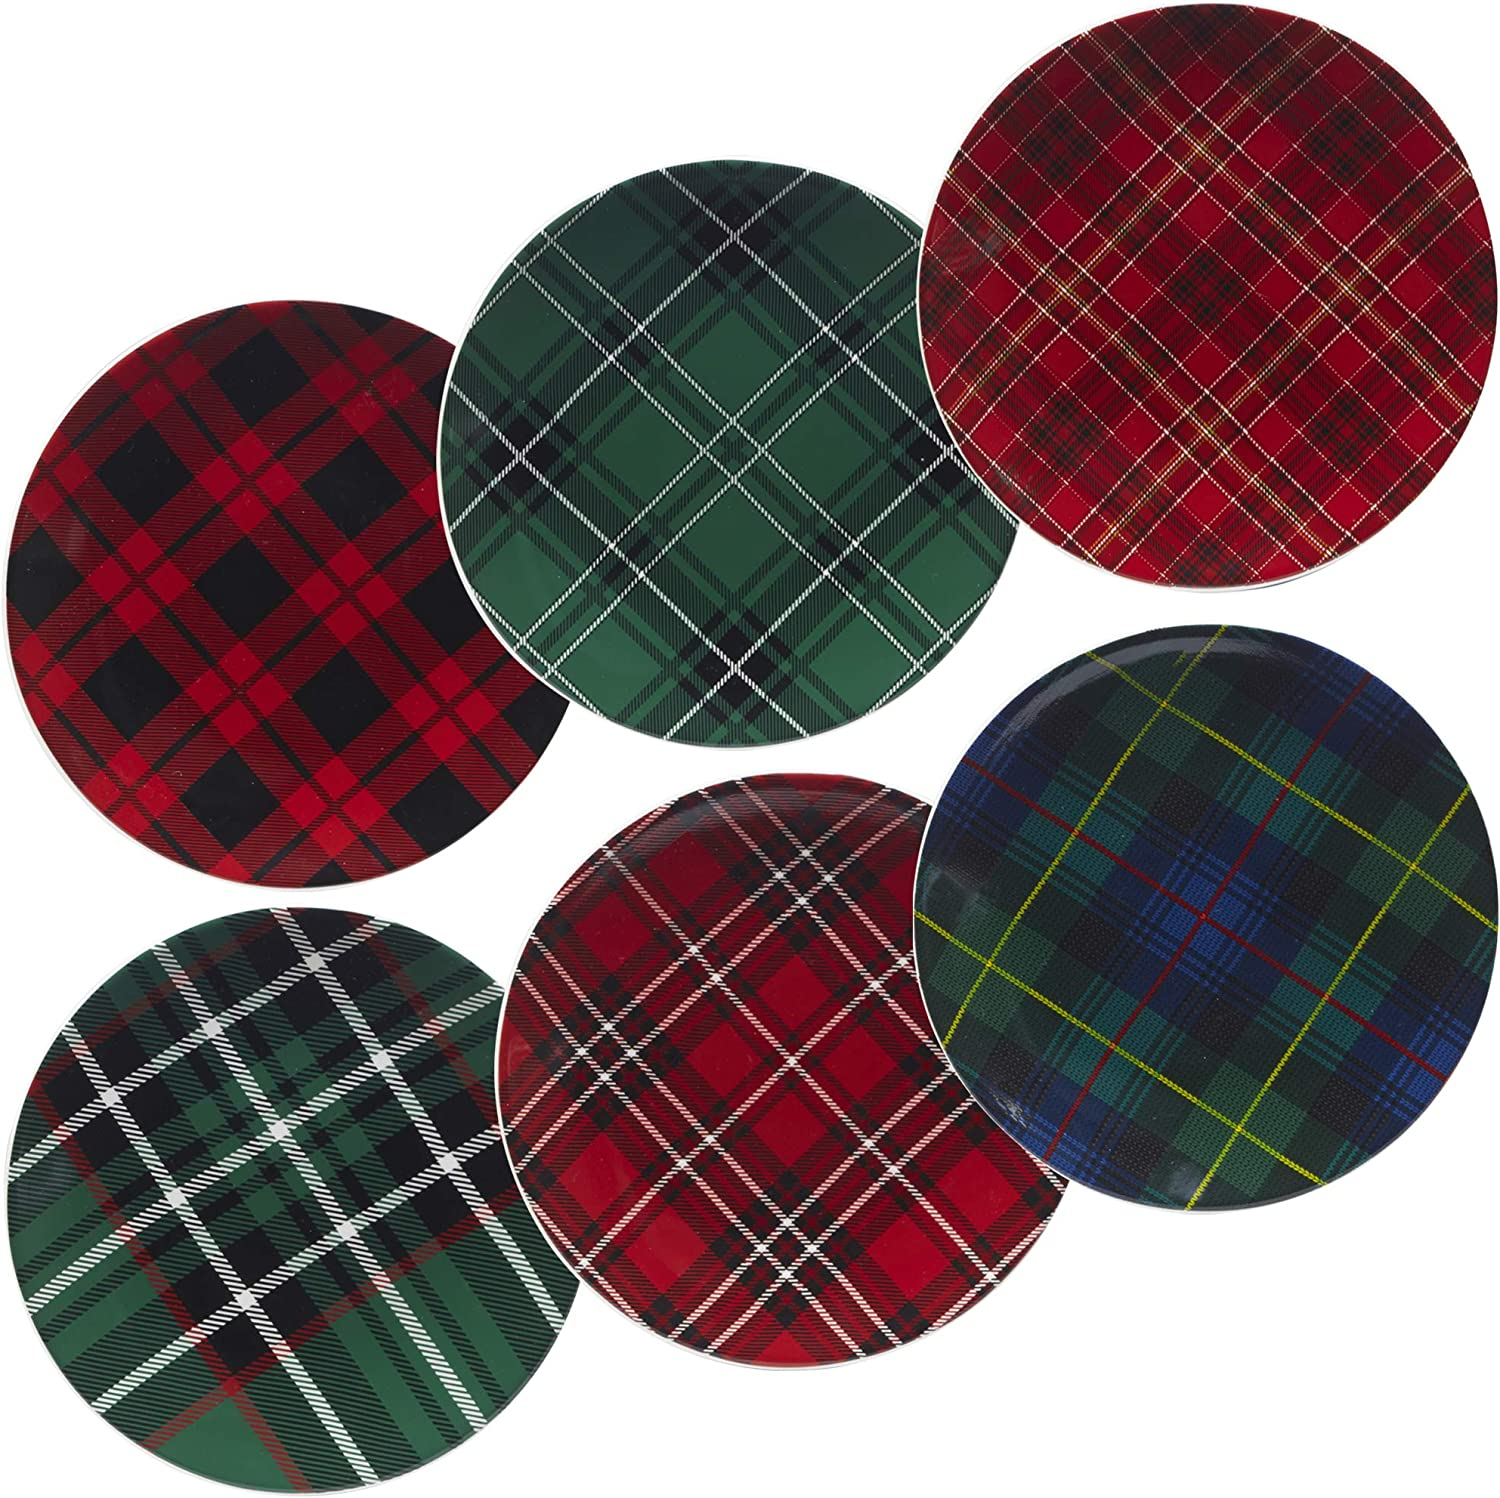 Certified International 22926SET6 Christmas Plaid 8.25  Salad Dessert Plate, Set of 6 Assorted Designs, One Size, Mulicolord